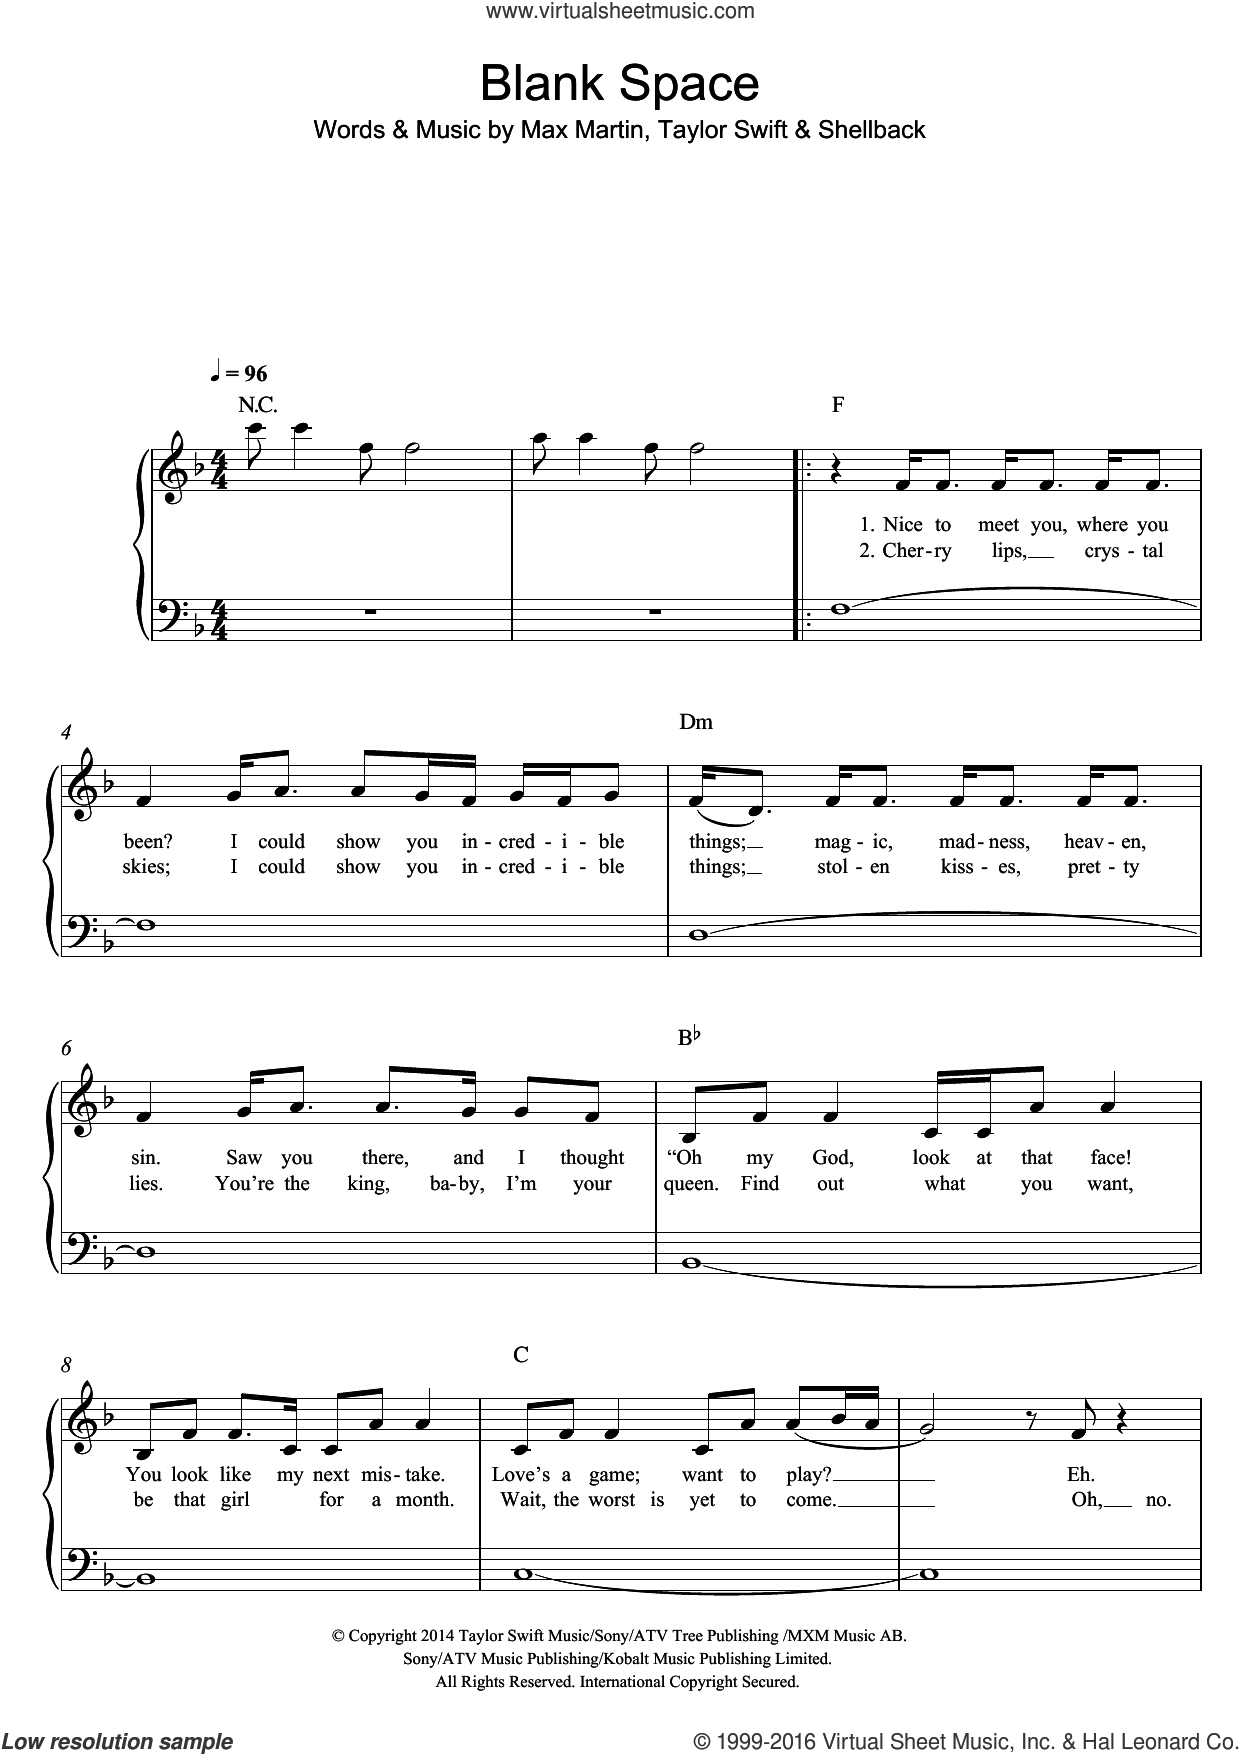 blank space sheet music for piano free printable